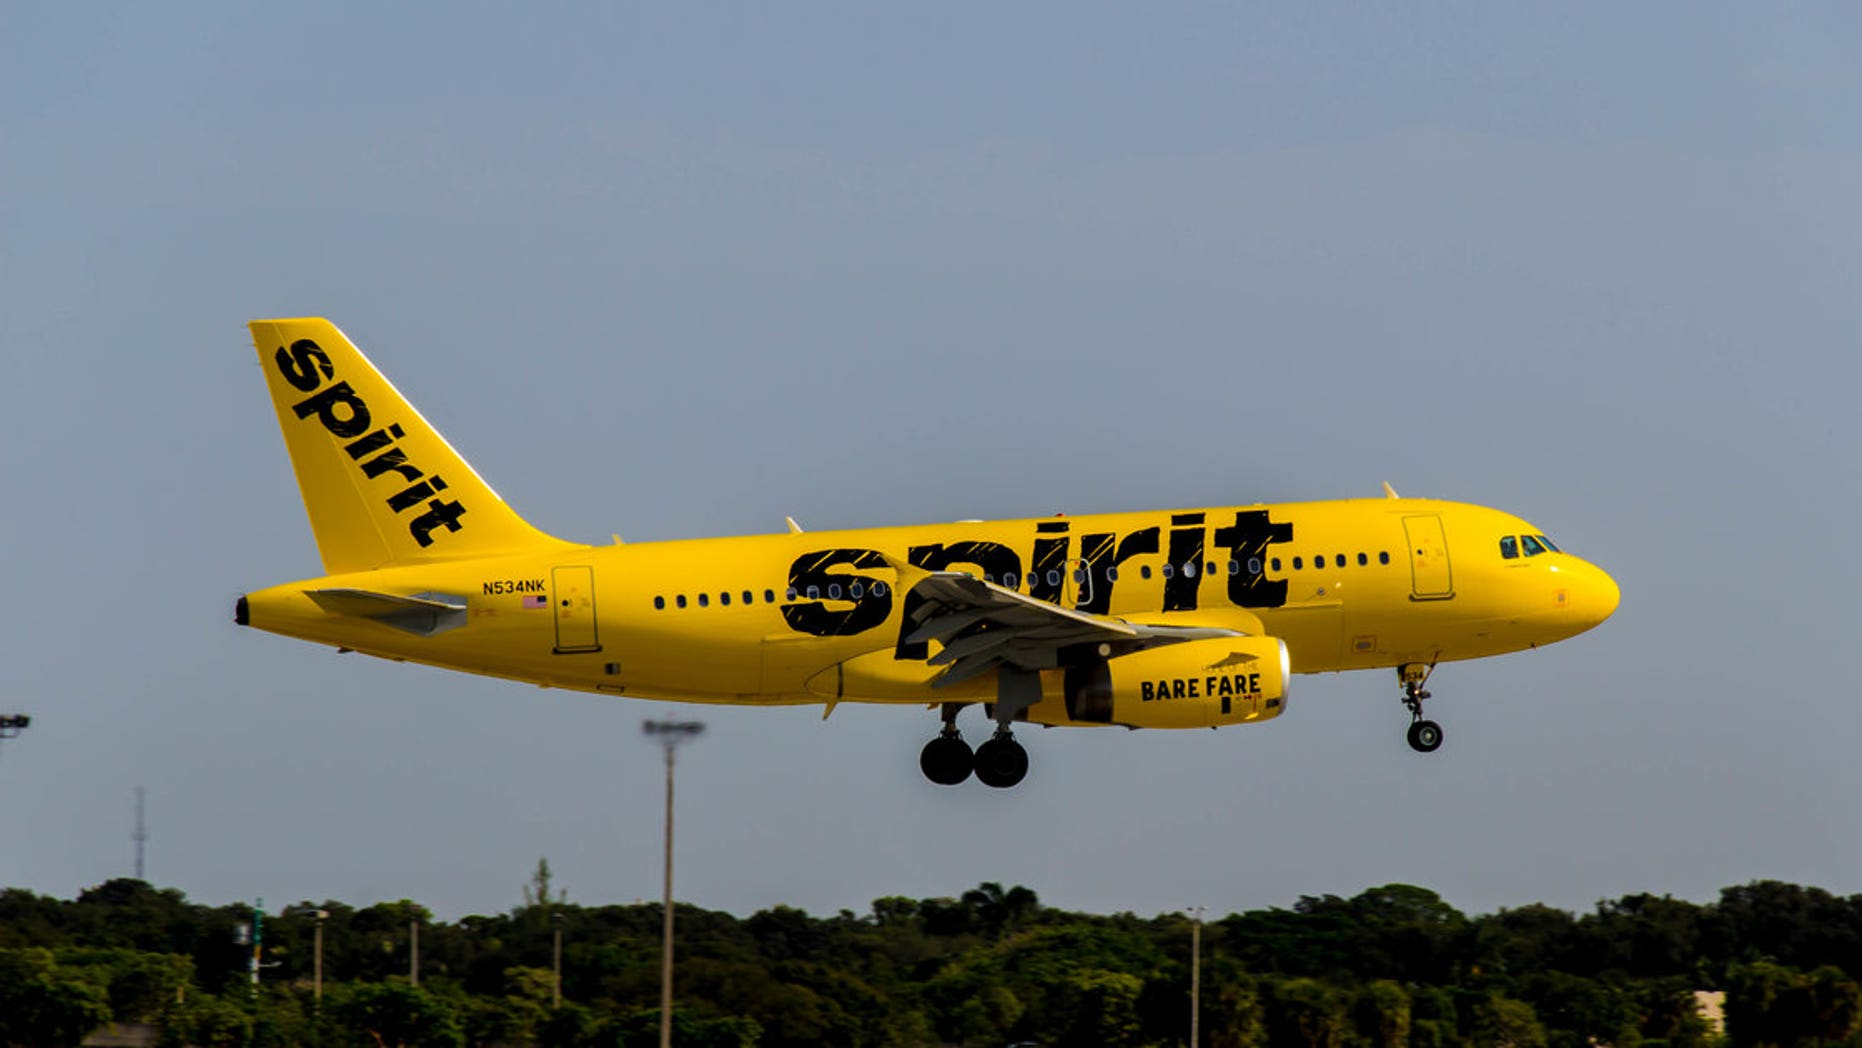 Not flying so high? Spirit Airlines ranked dead last in a customer satisfaction survey.